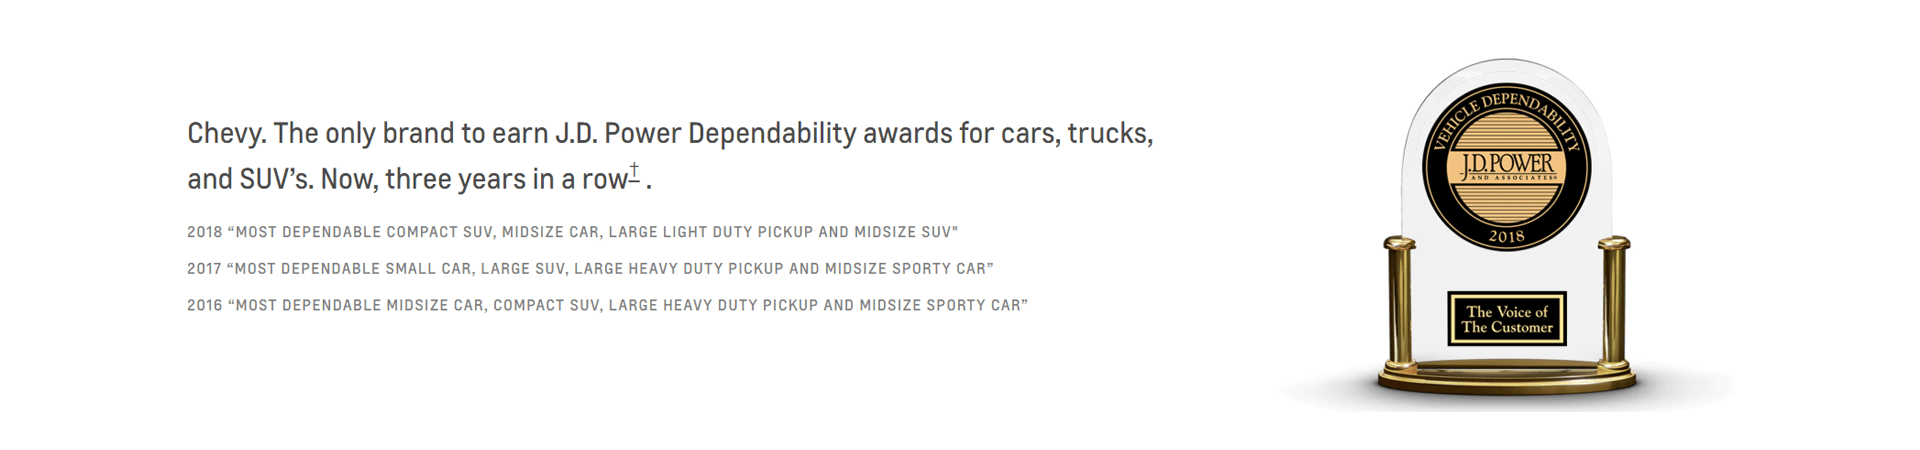 Chevy Awards